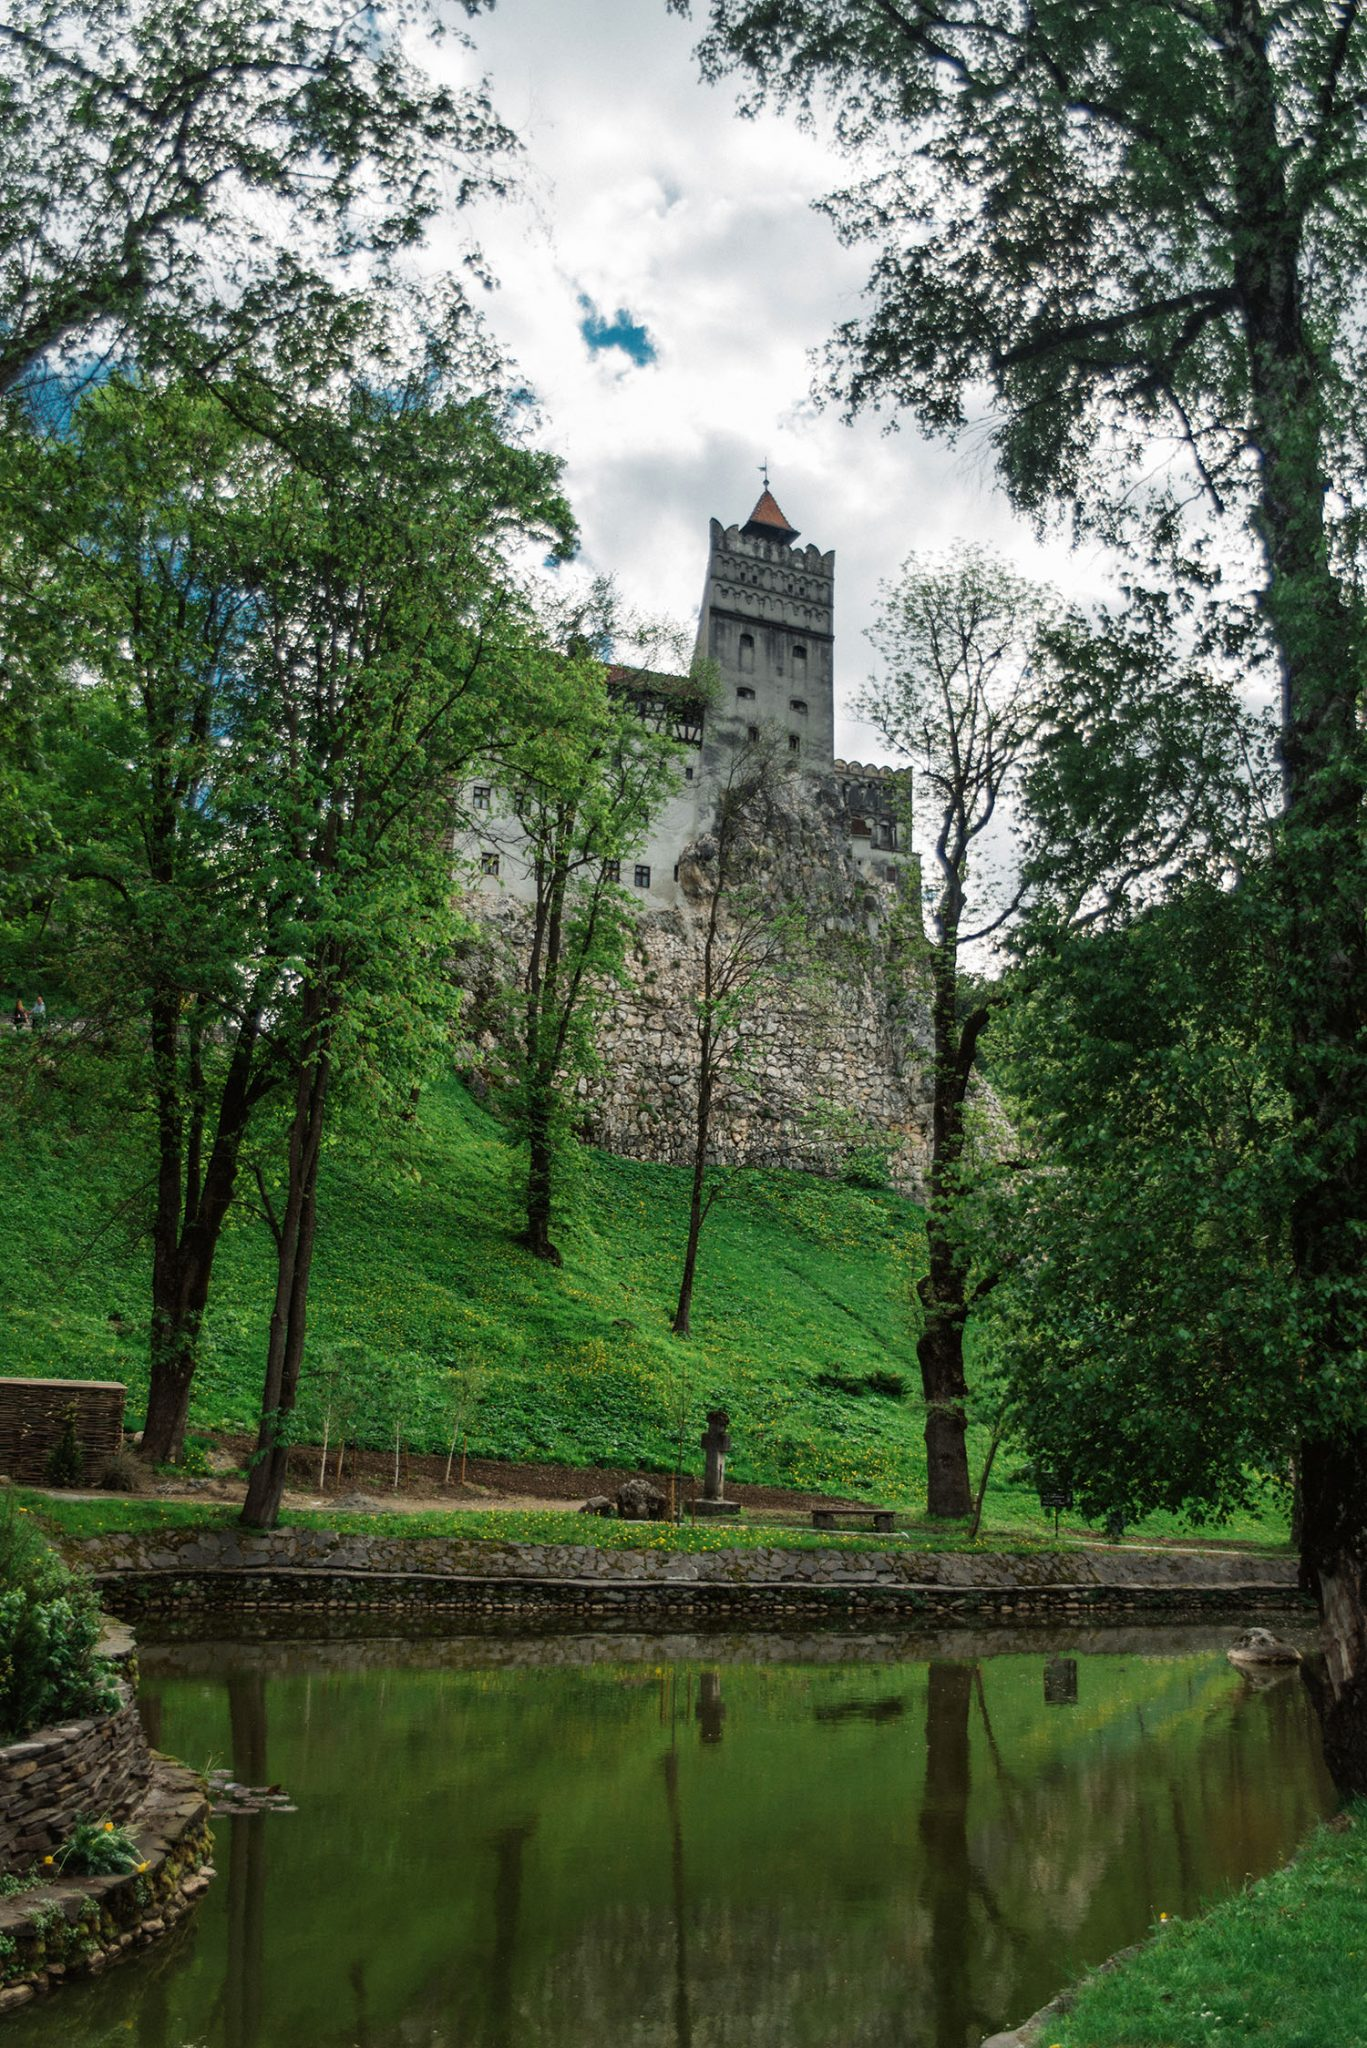 From Bucharest to Dracula's Castle in Transylvania